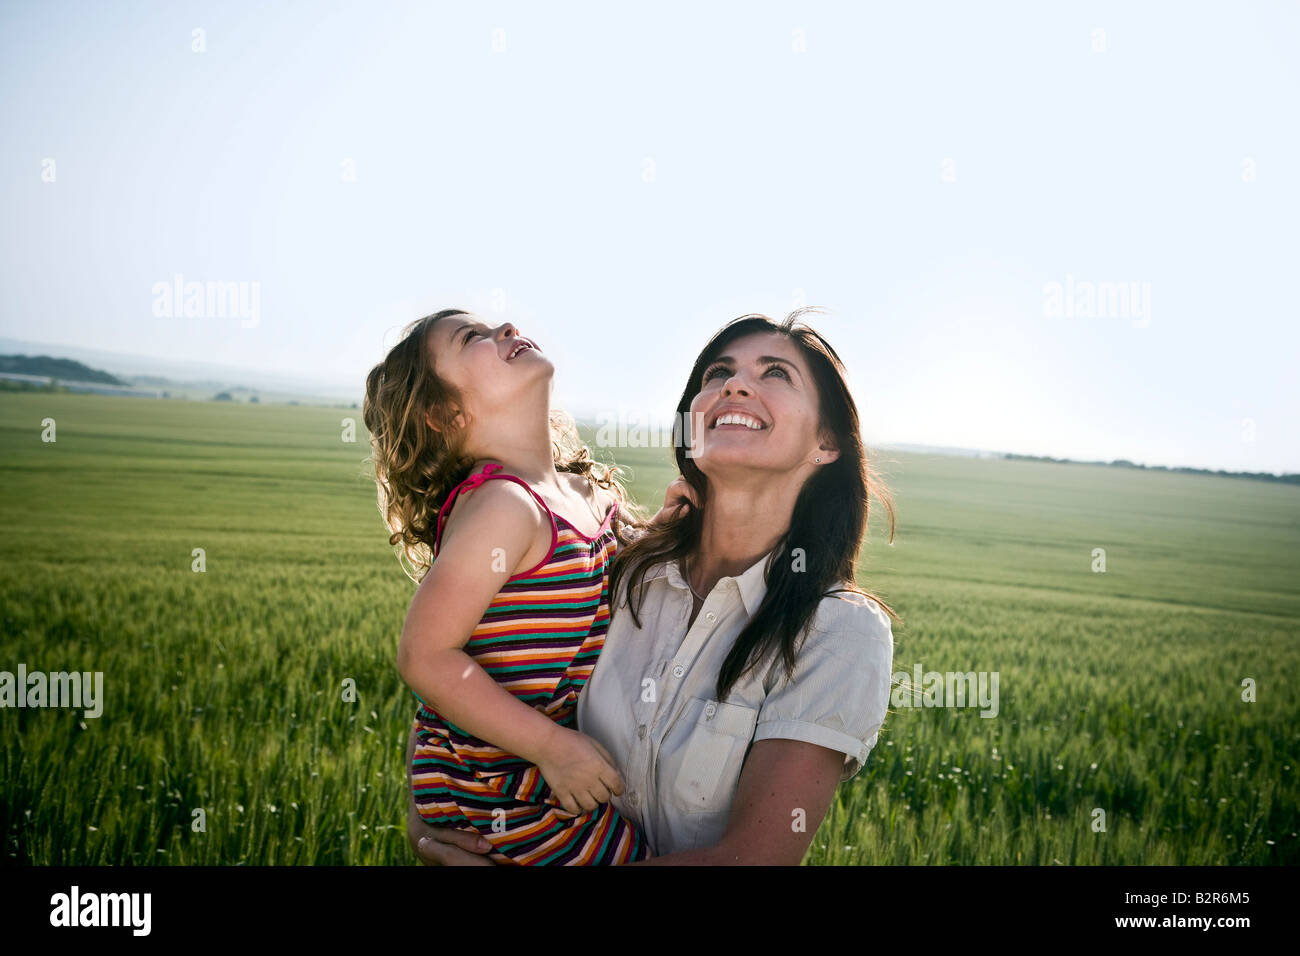 Woman and child looking at sky - Stock Image